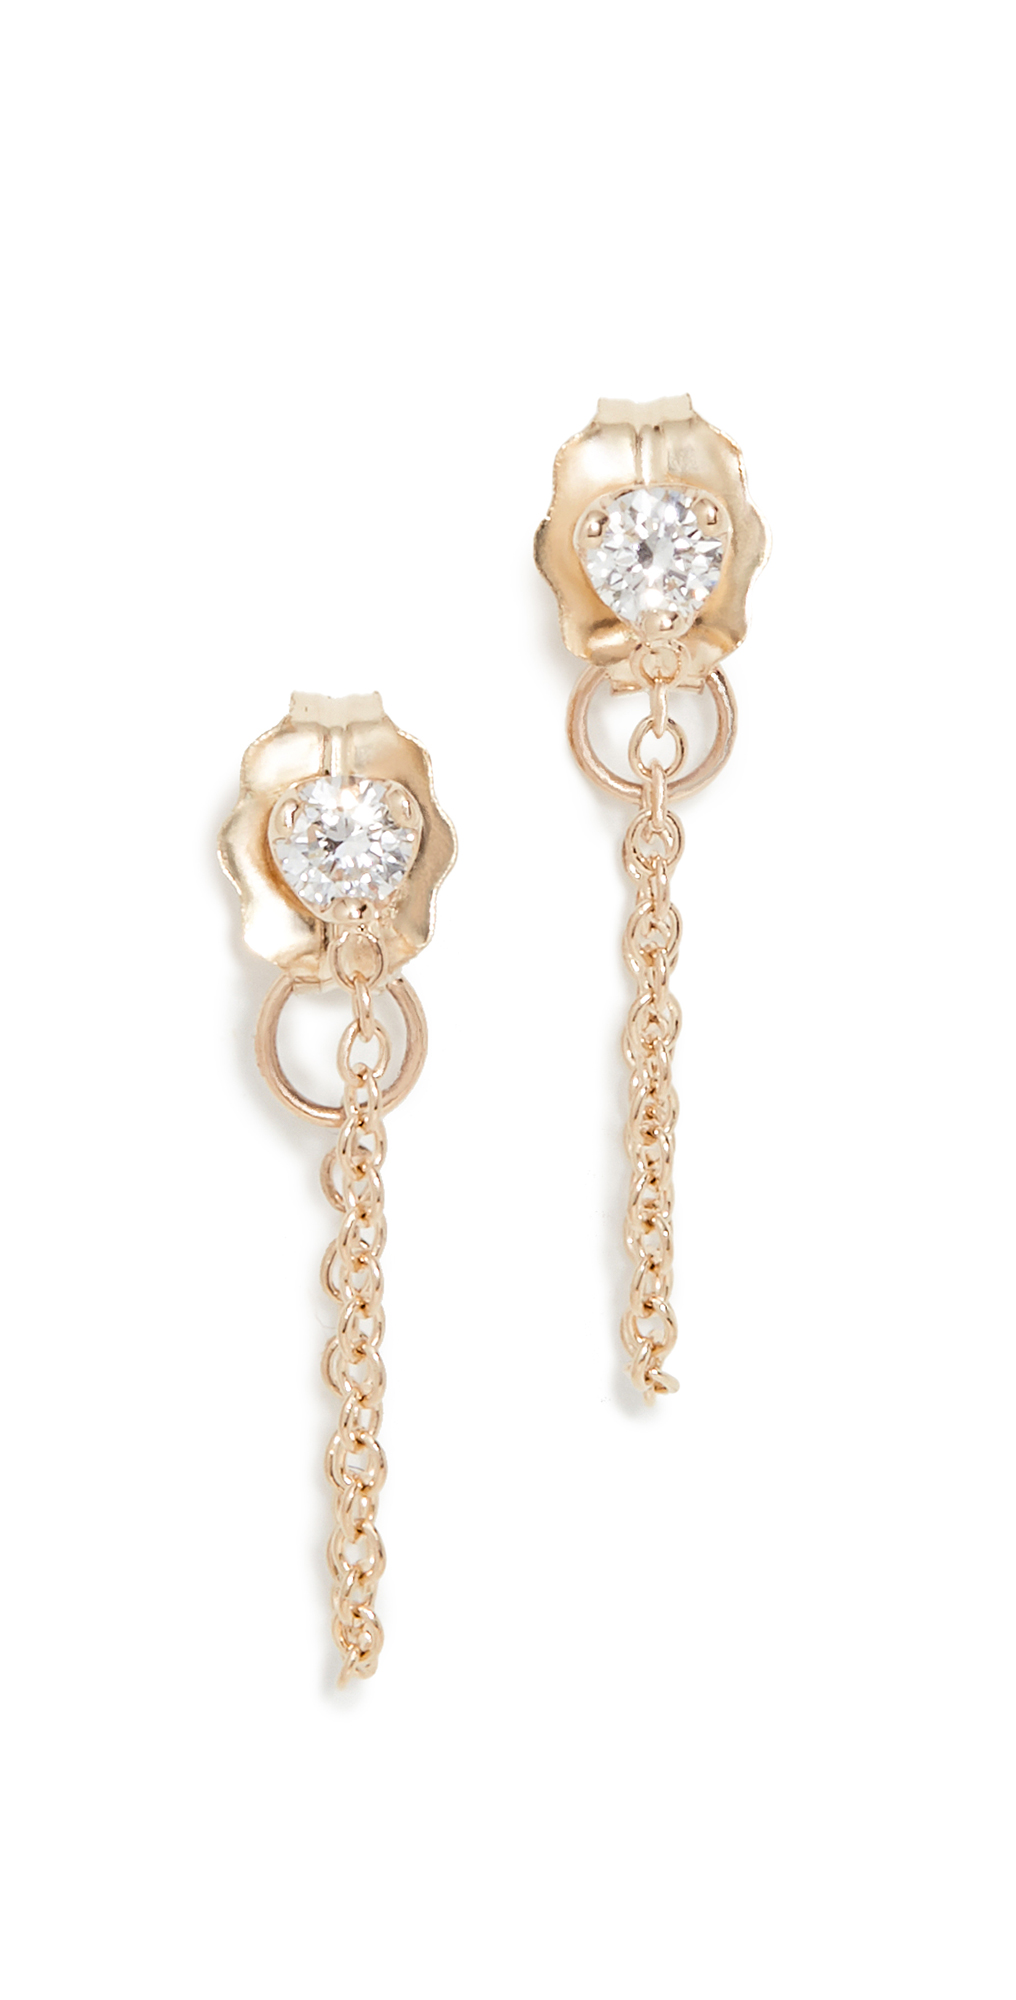 Zoë Chicco Prong Diamond Earrings In Gold